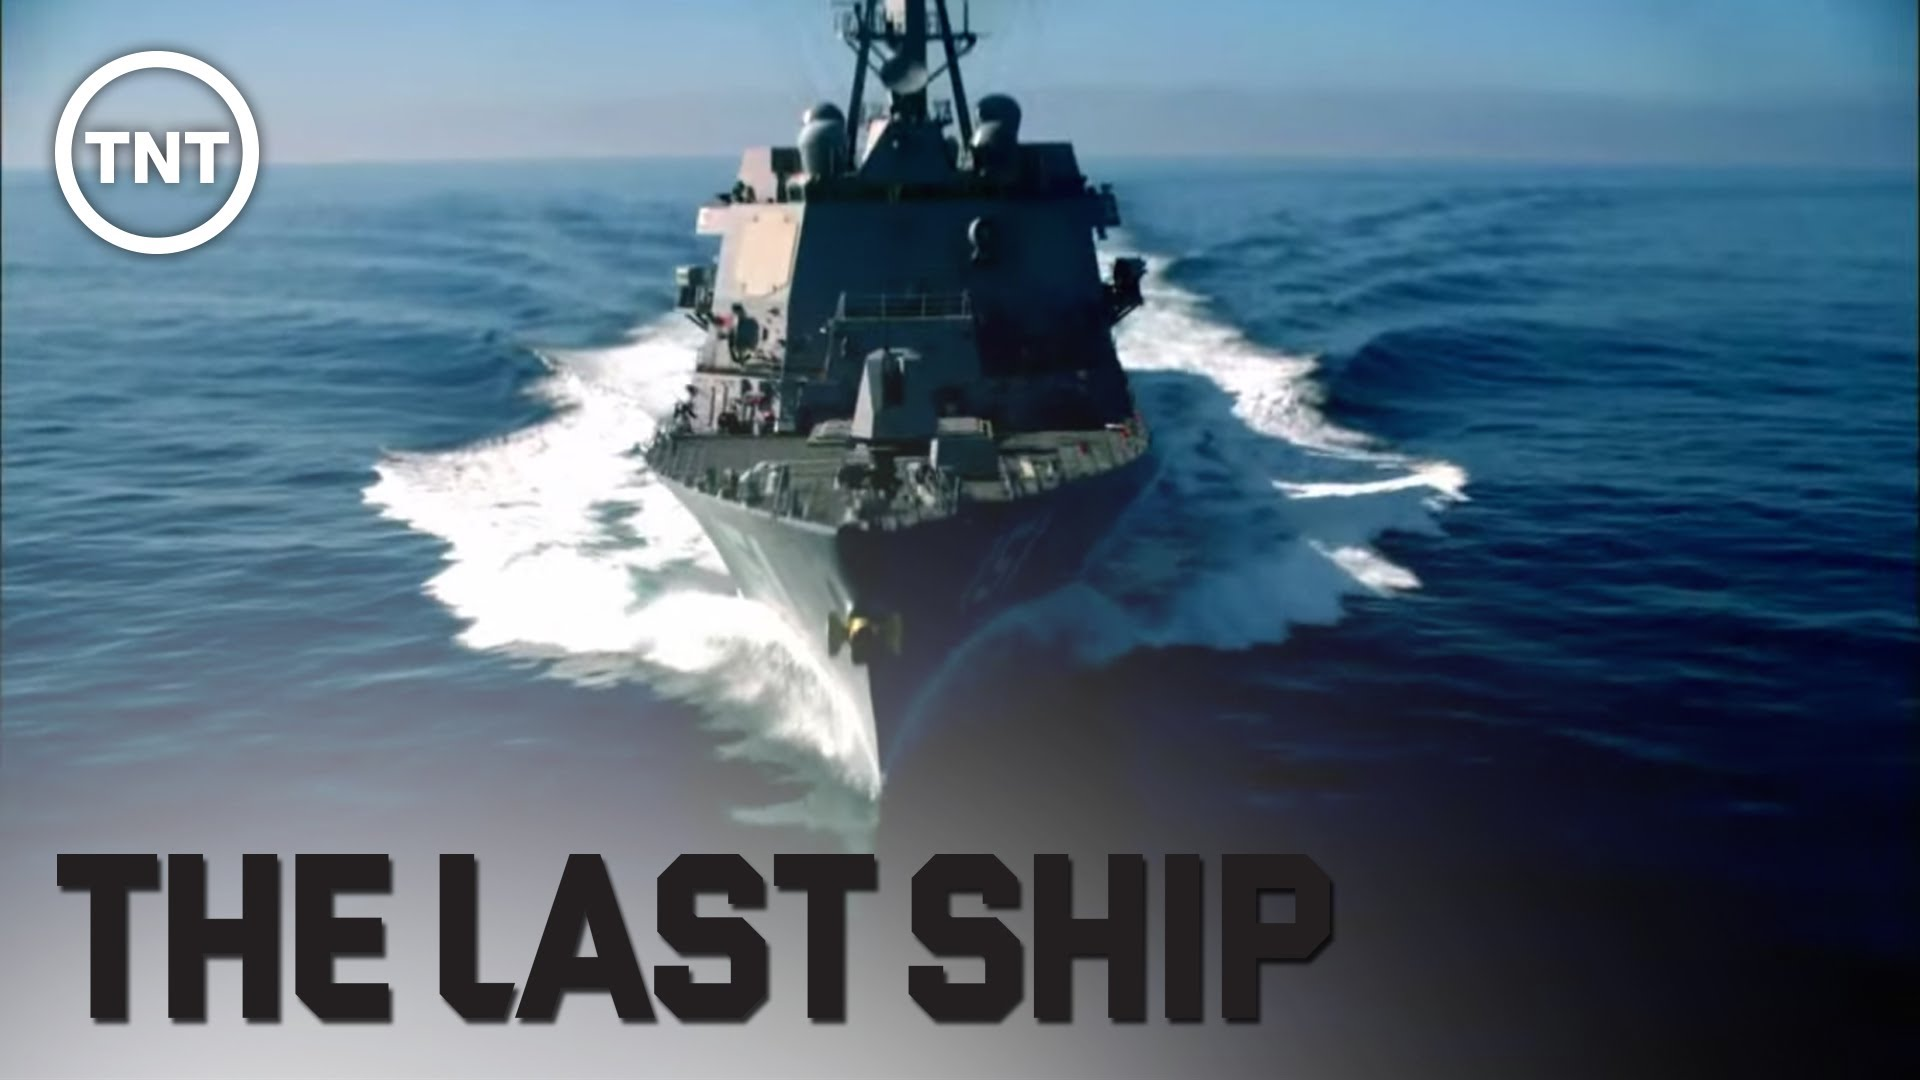 The Last Ship: A review